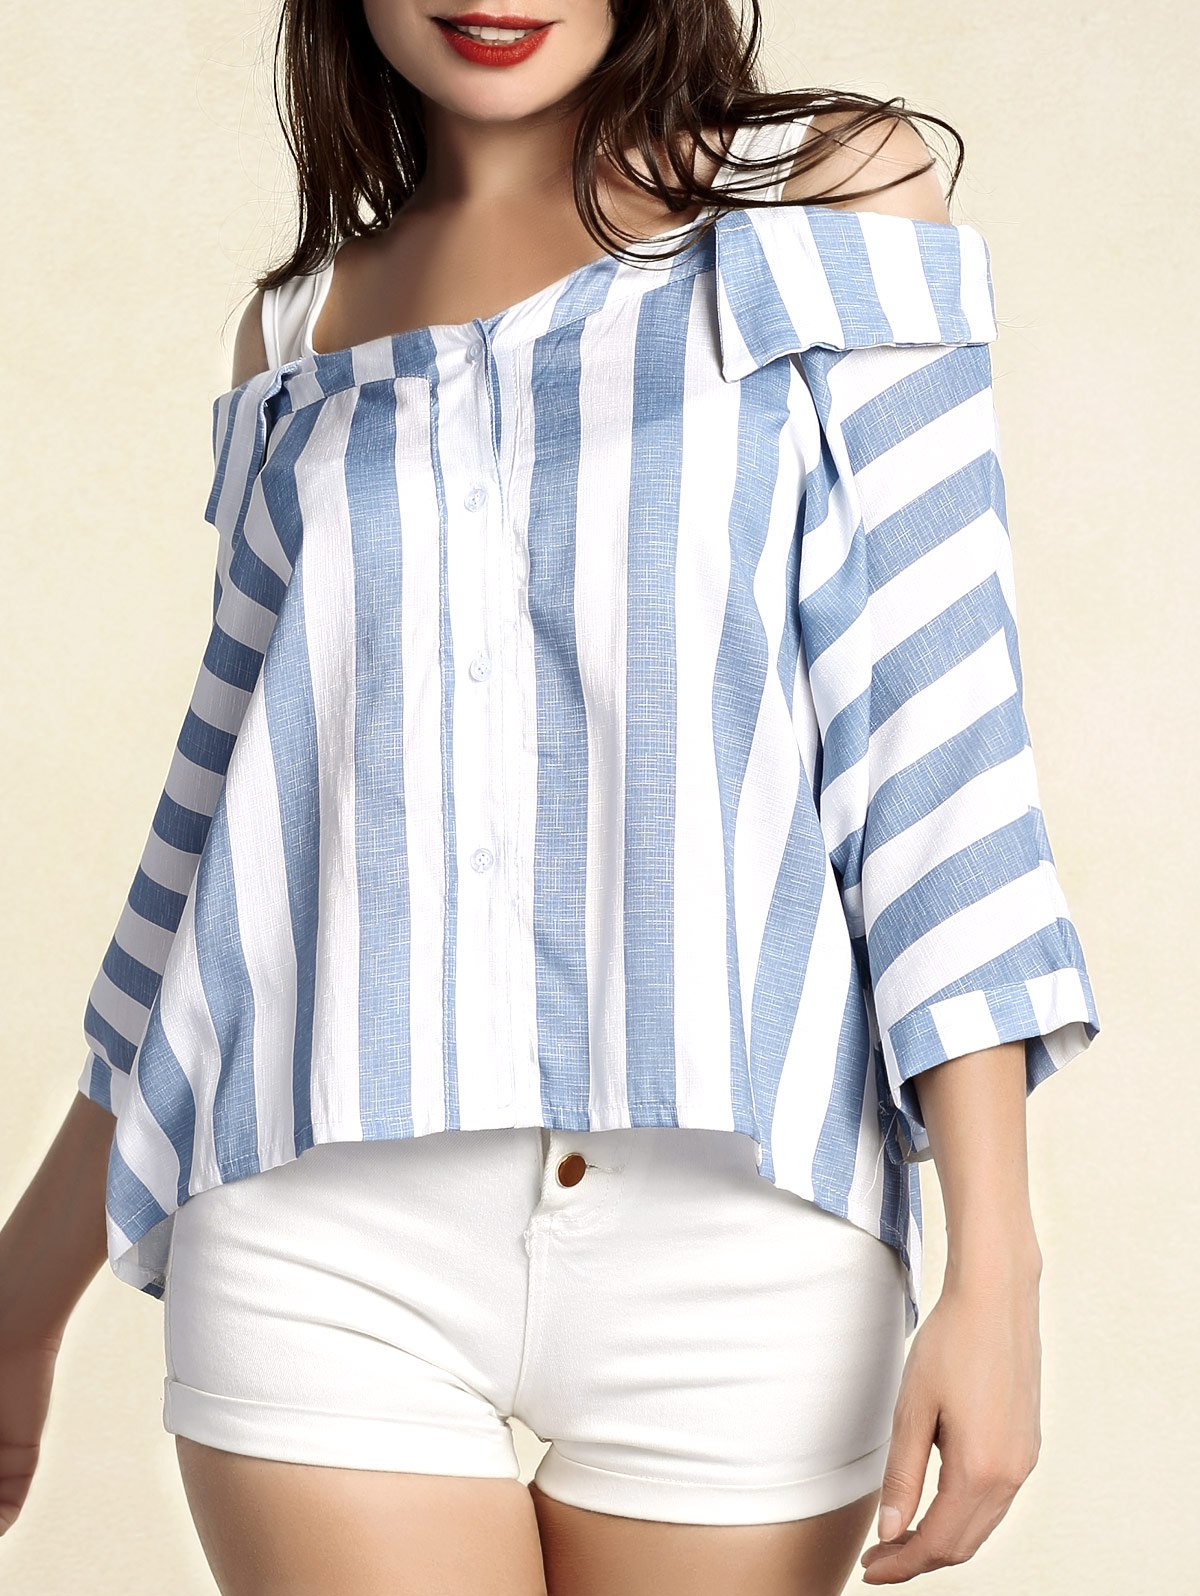 Chic Women's Striped 3/4 Sleeve Cut Out Blouse - BLUE 4XL